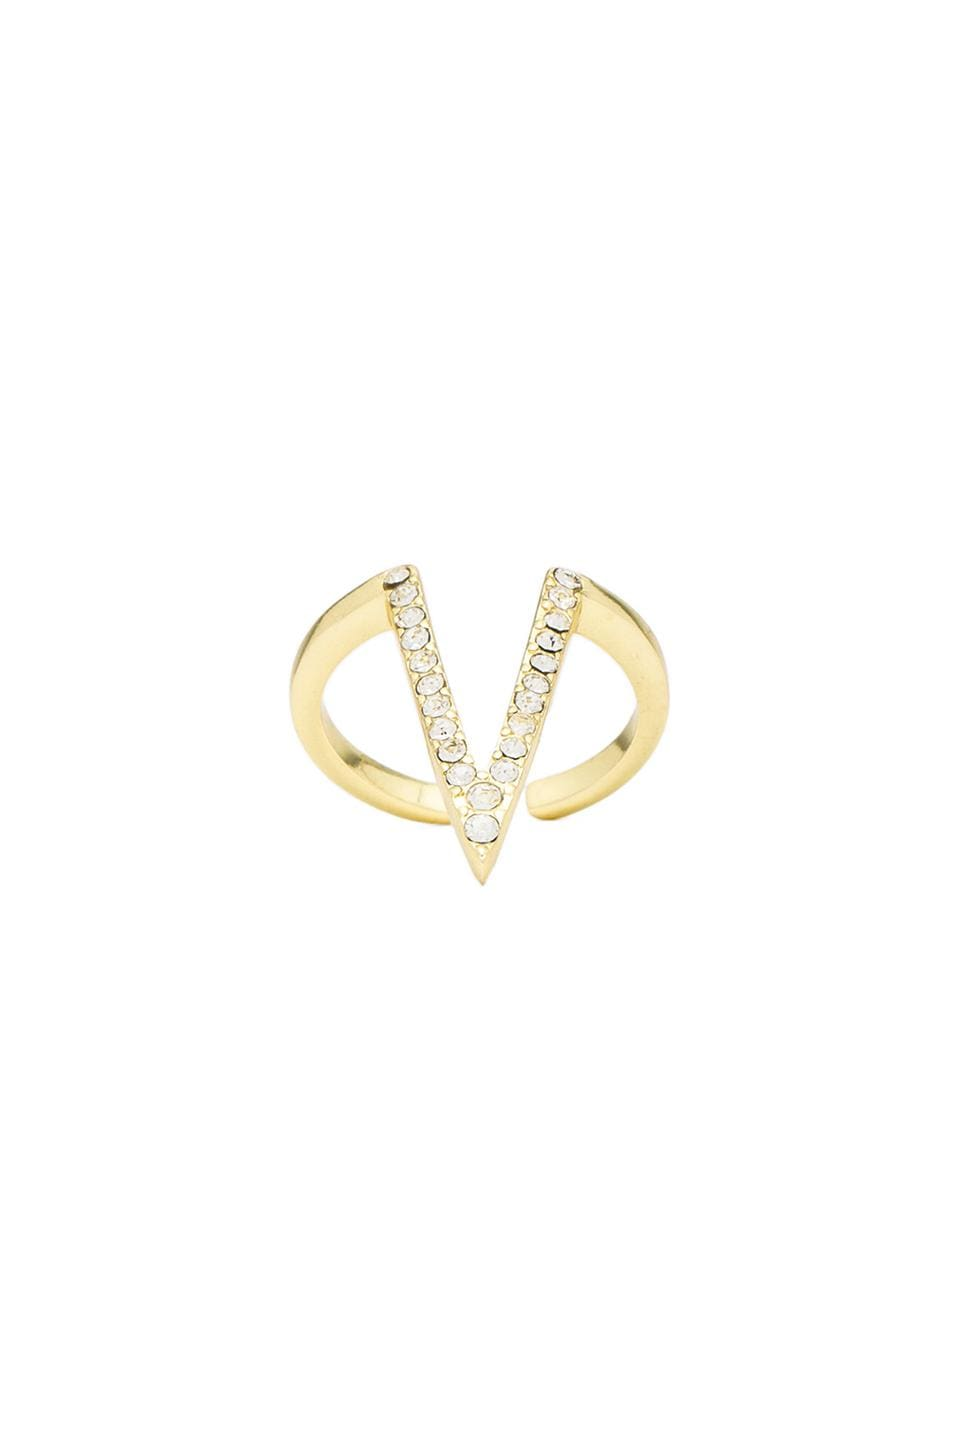 Lisa Freede Mayra Ring in Gold